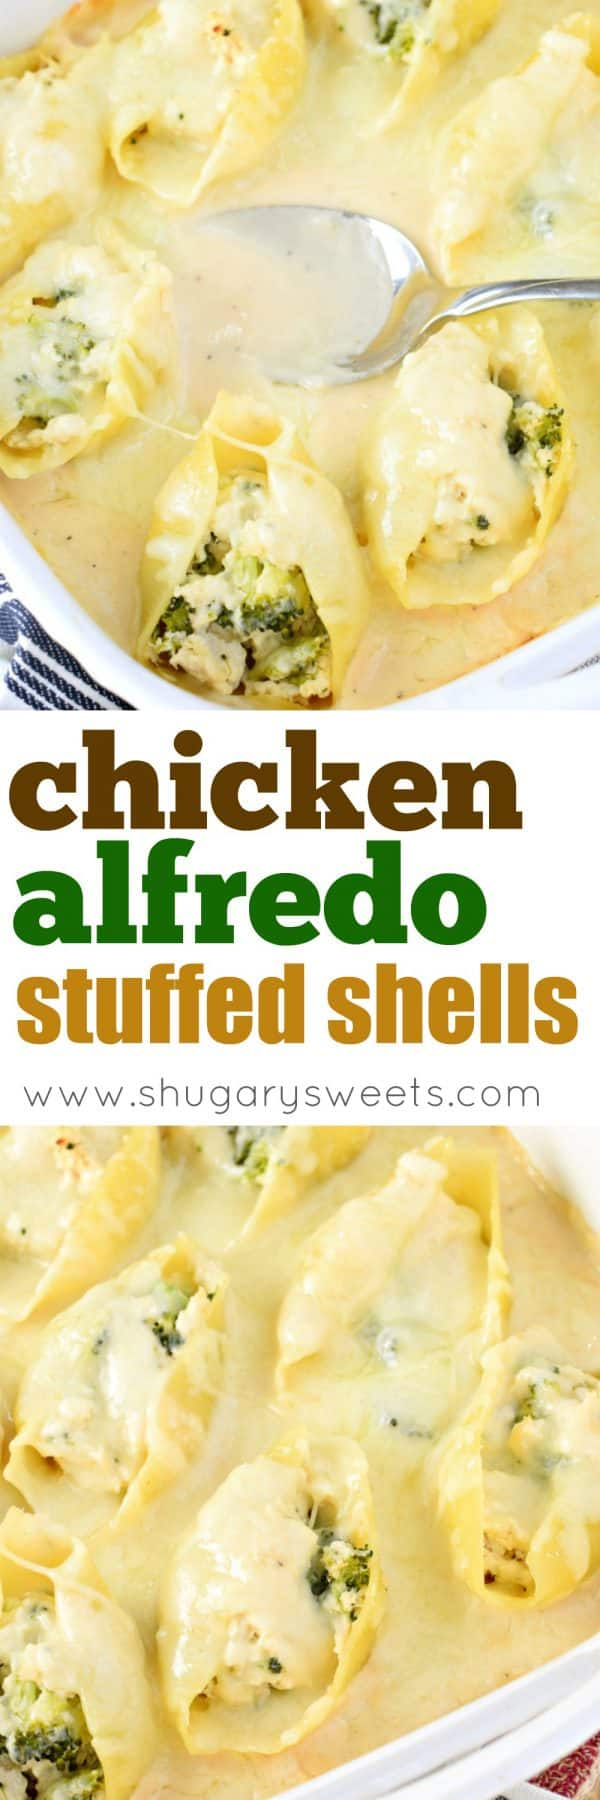 You'll love these easy, freezer friendly Chicken Alfredo Stuffed Shells. The perfect weeknight dinner recipe with chicken, cheese, broccoli and alfredo sauce all stuffed in a pasta shell!